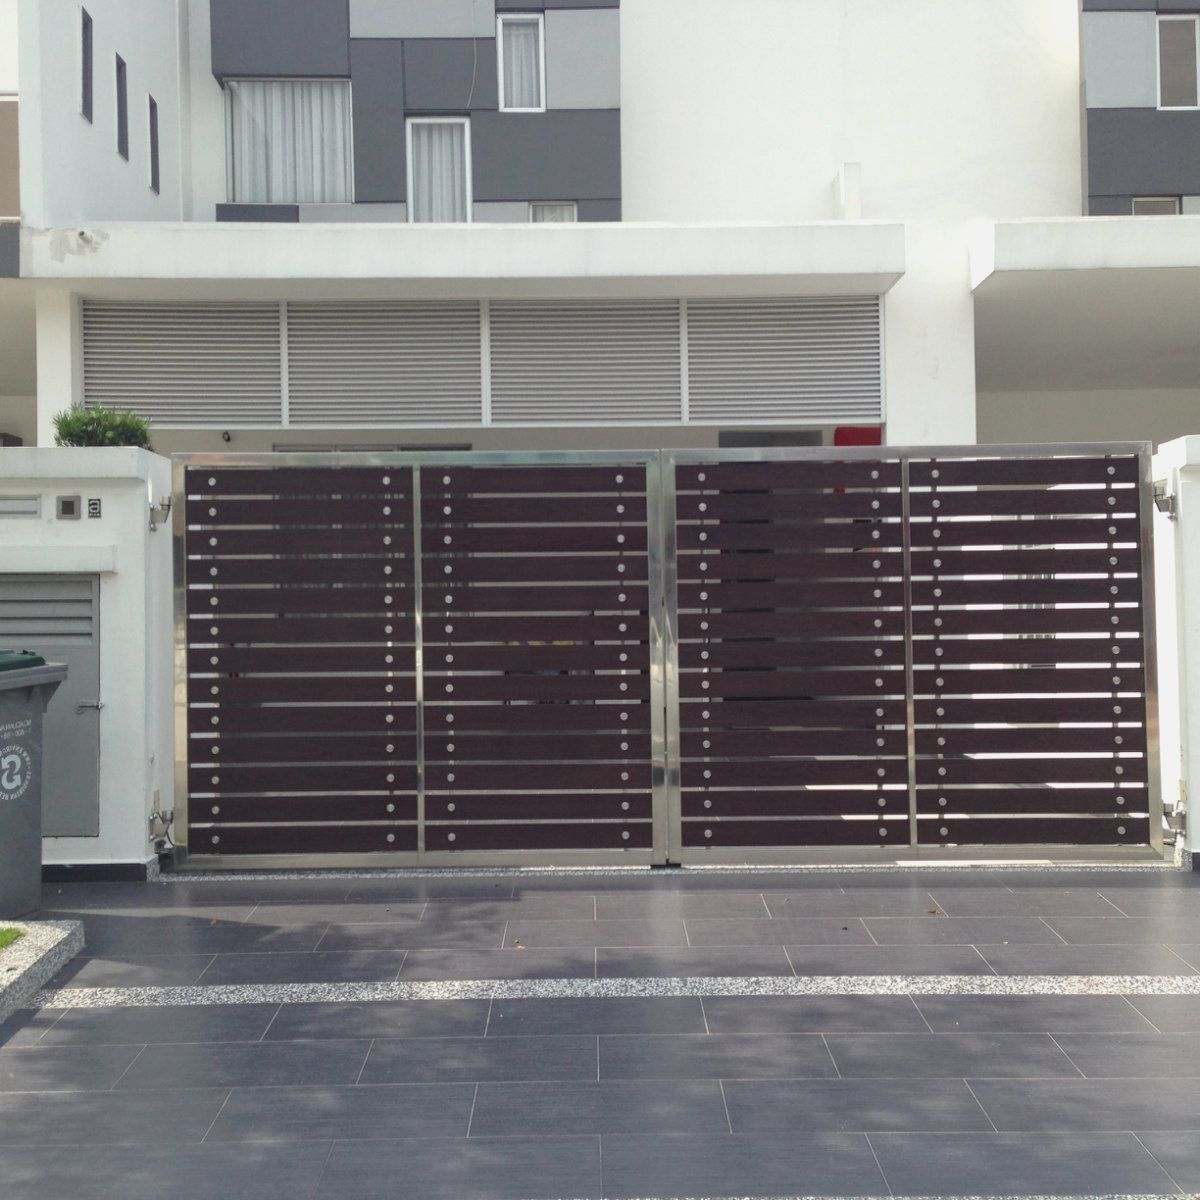 Main gate design in stainless steel stainless steel main gate jb johor bahru iron grills setia